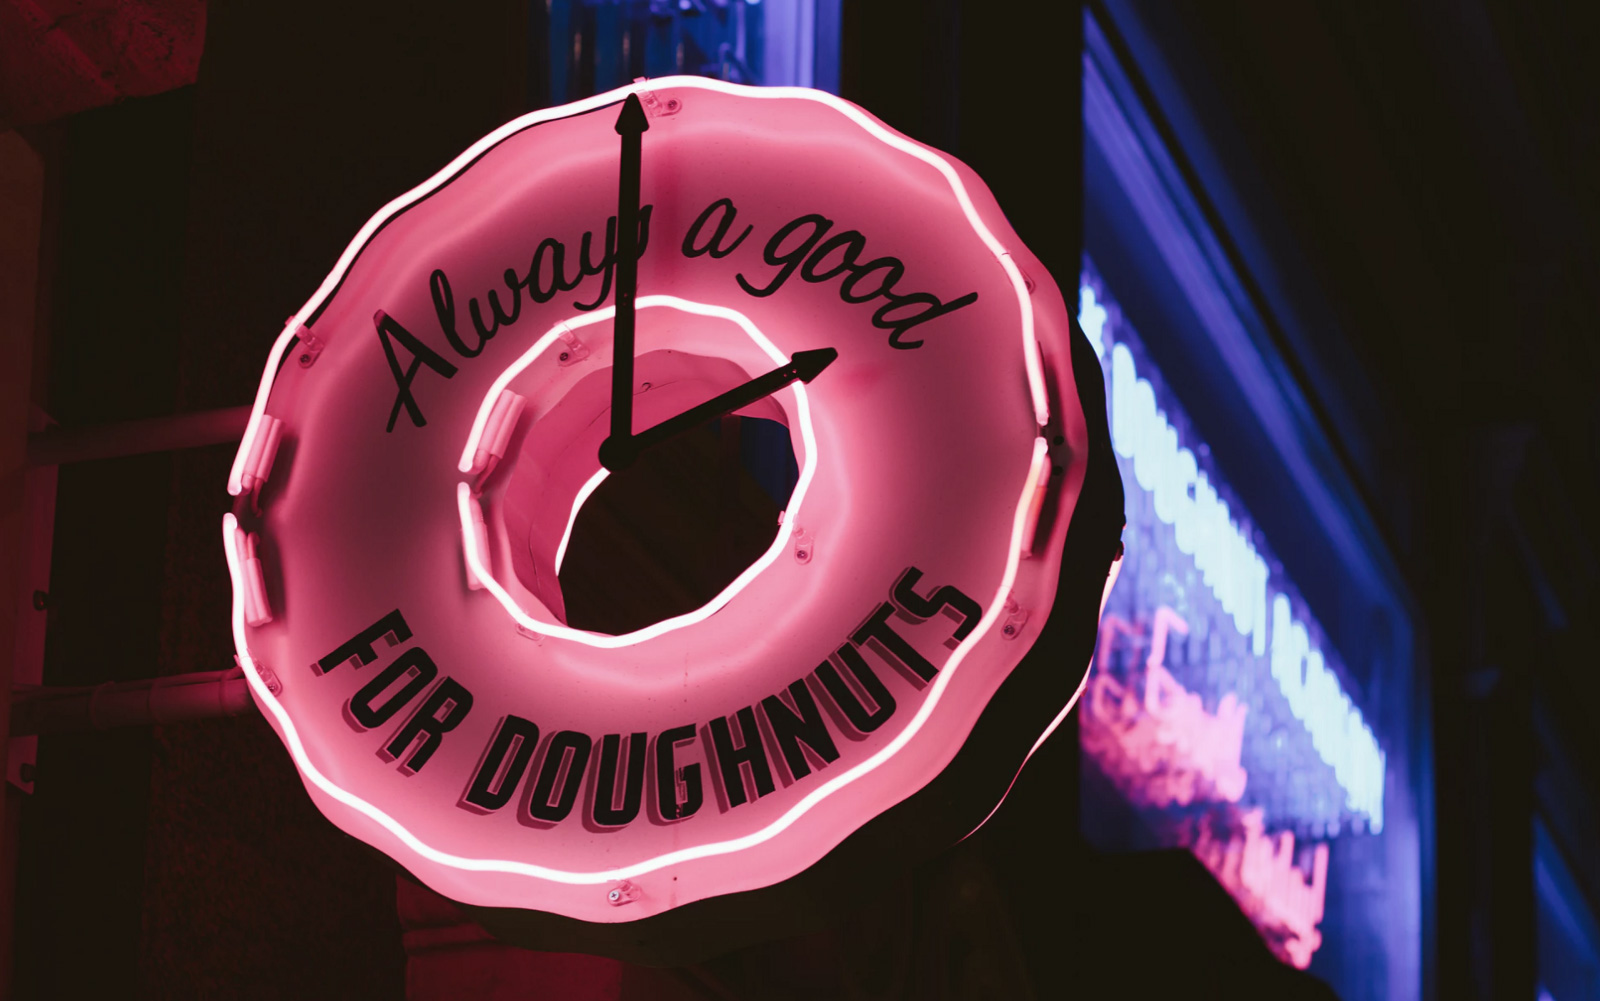 A neon sign of a donut place that says it's always a good time for a doughnuts.